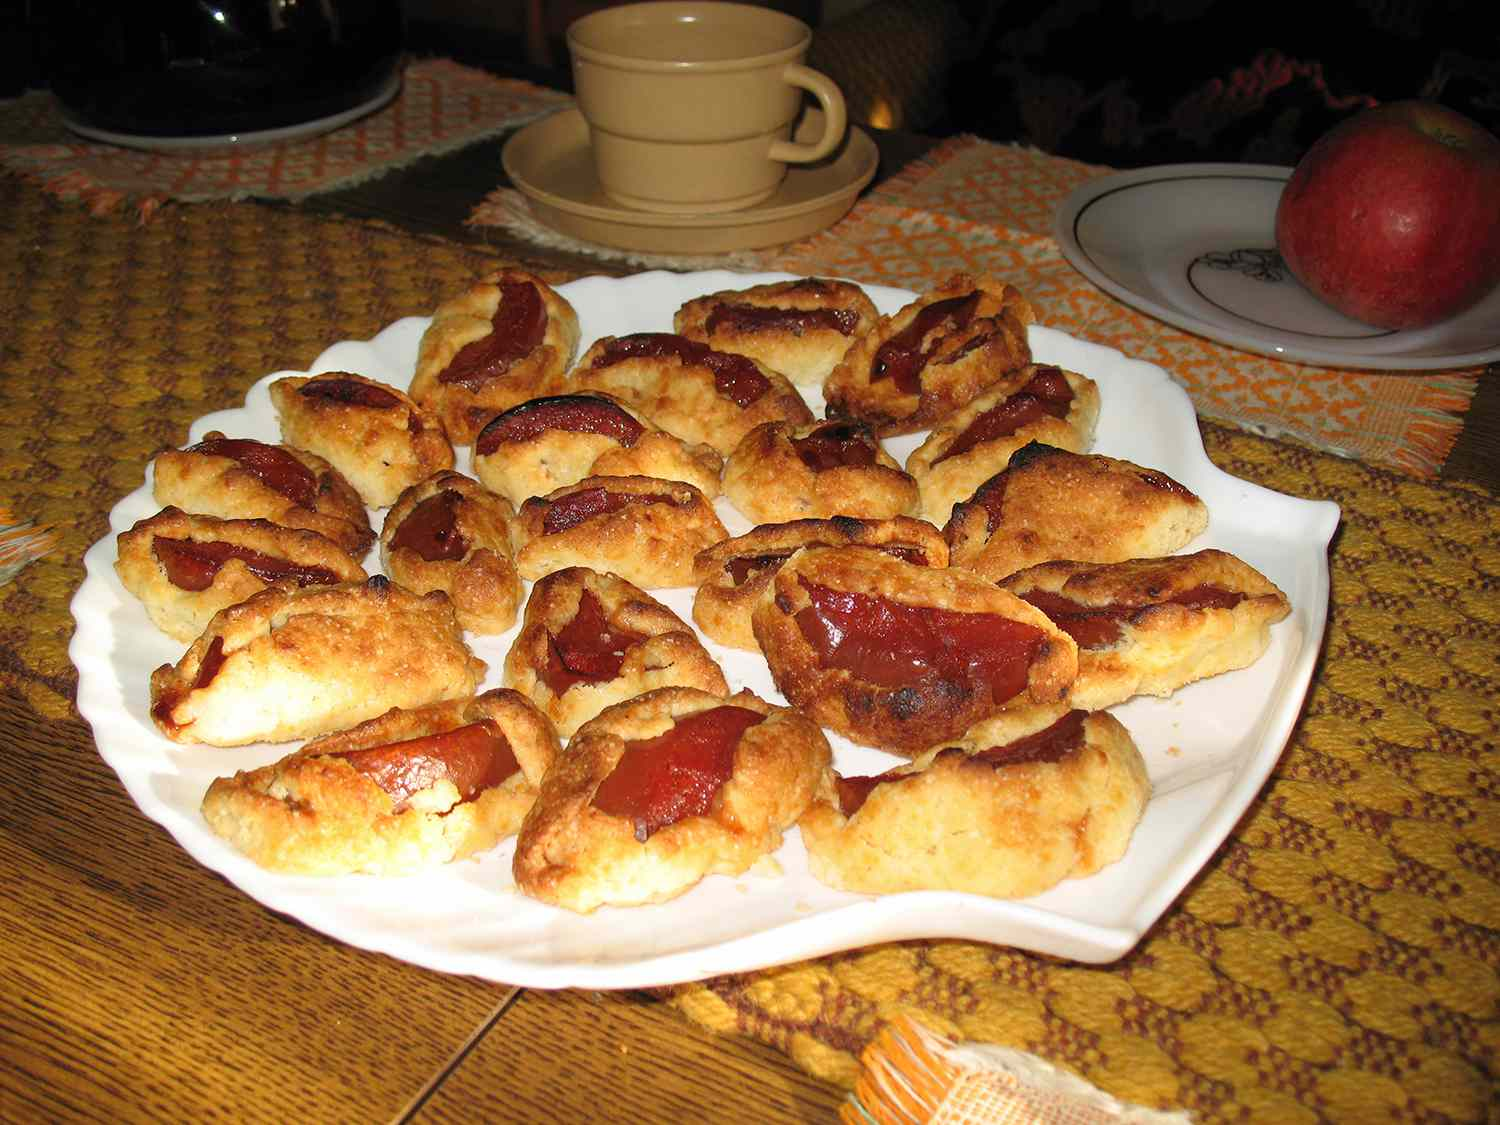 Homemade dessert of poached quince slices baked in pastry